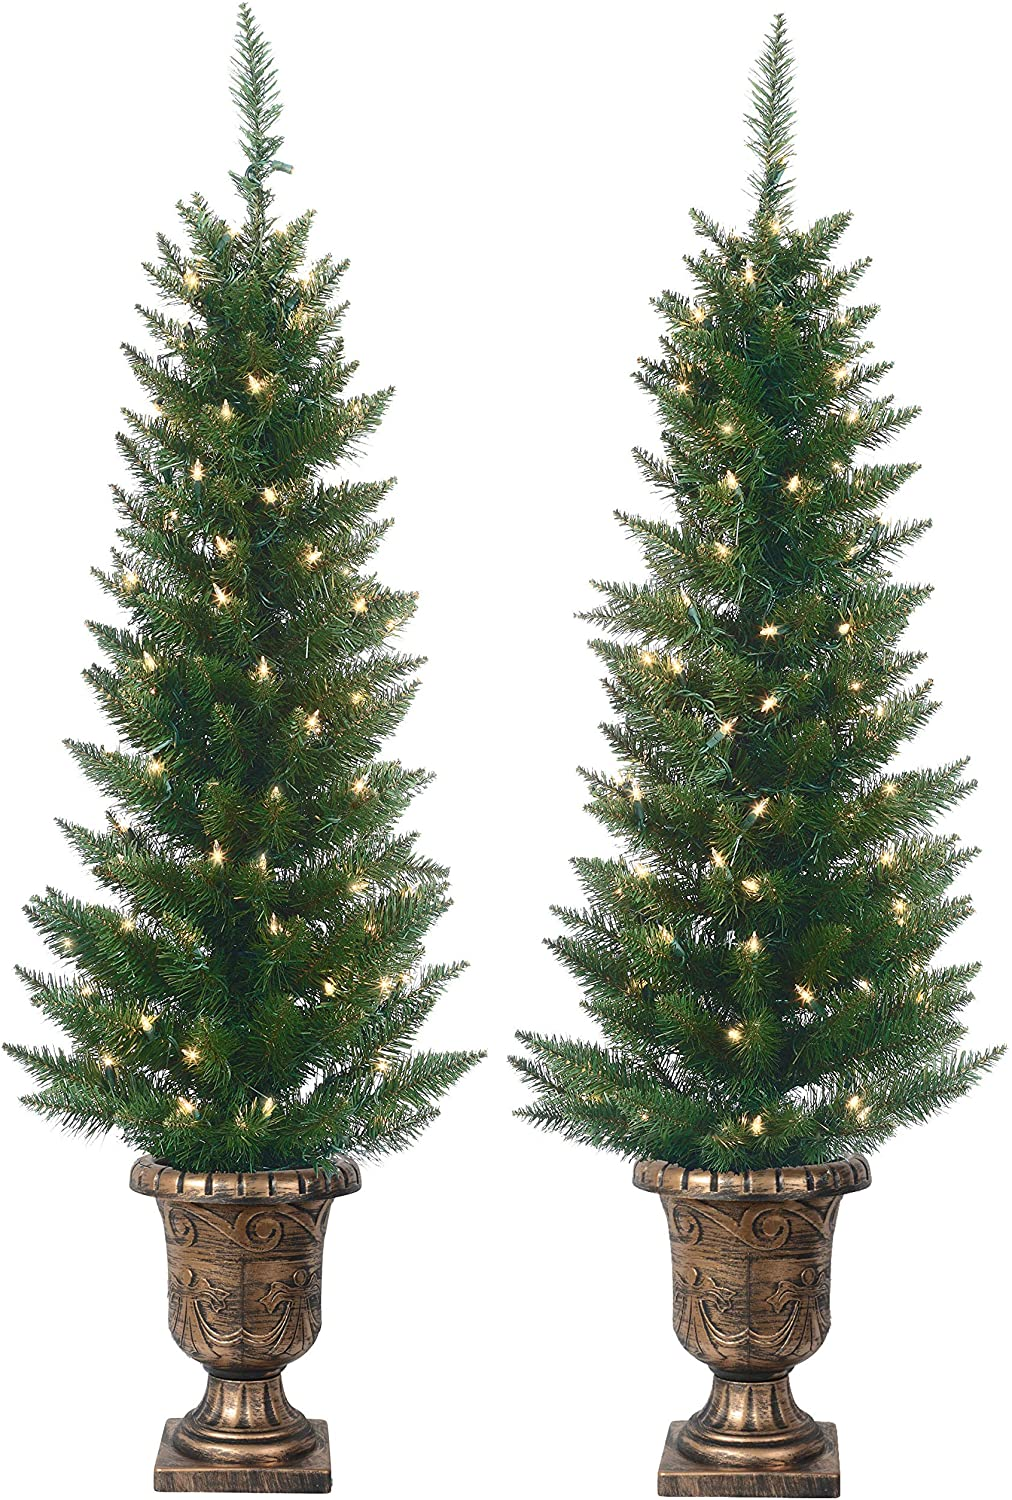 Set of 2 Lighted Pre-Potted 4 Foot Artificial Cedar Topiary Outdoor Indoor Trees - Set of 2 - Battery Operated with Timers